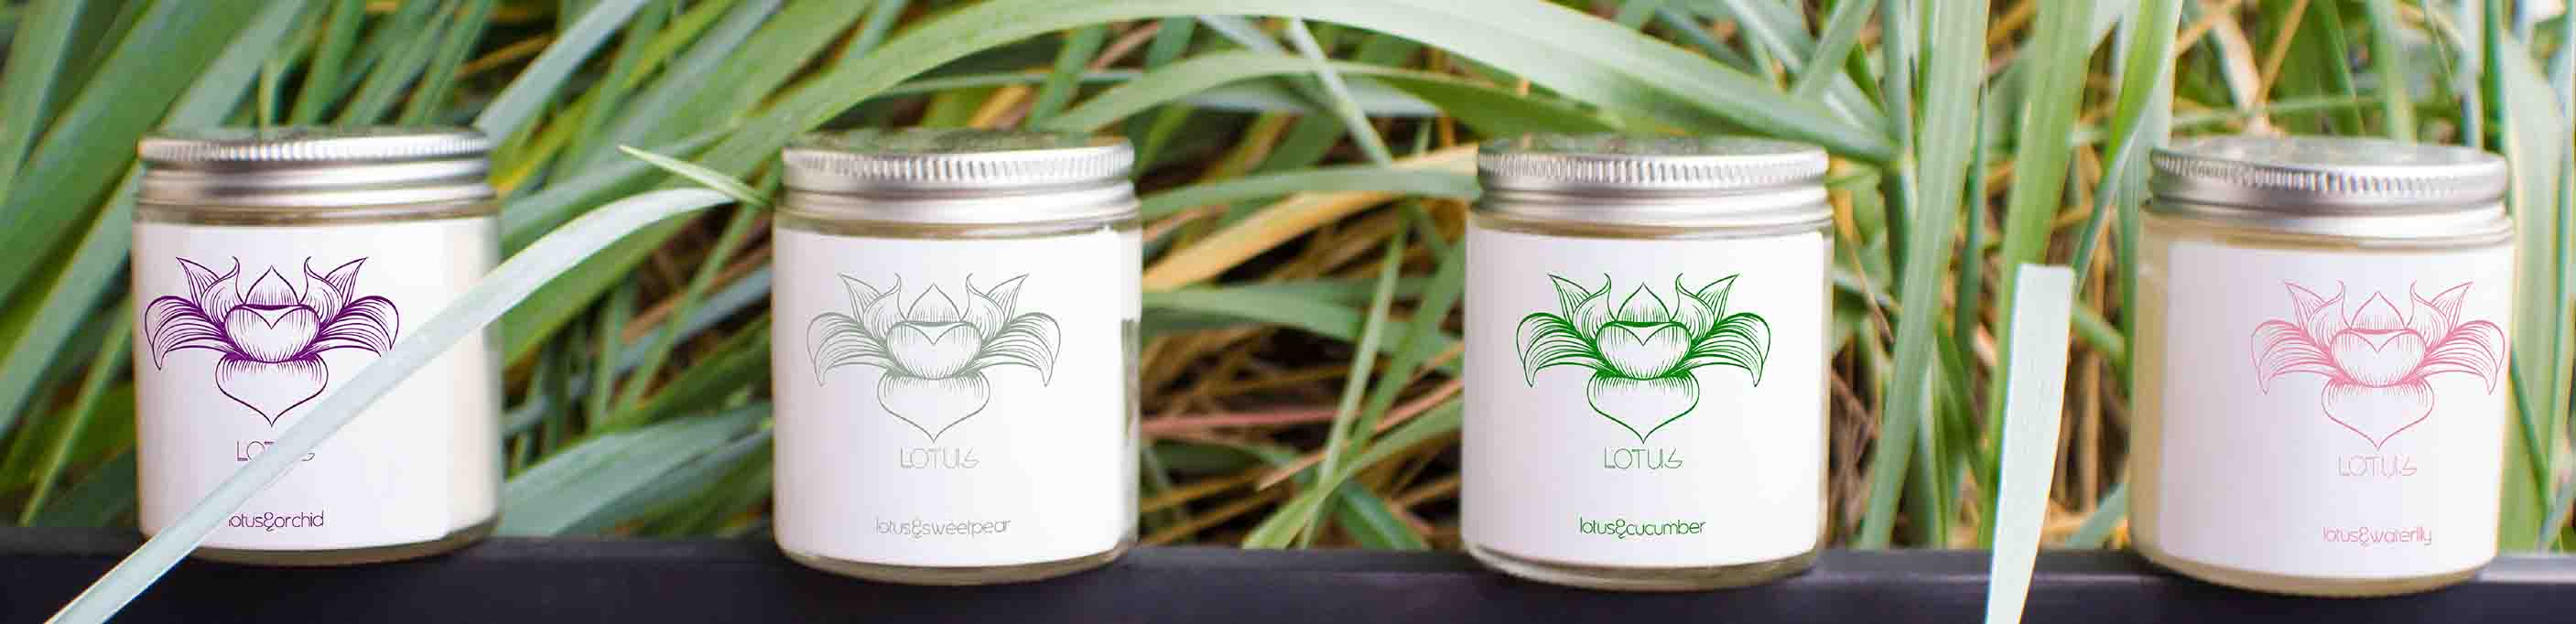 Candle Jars - Larger Sizes - 400